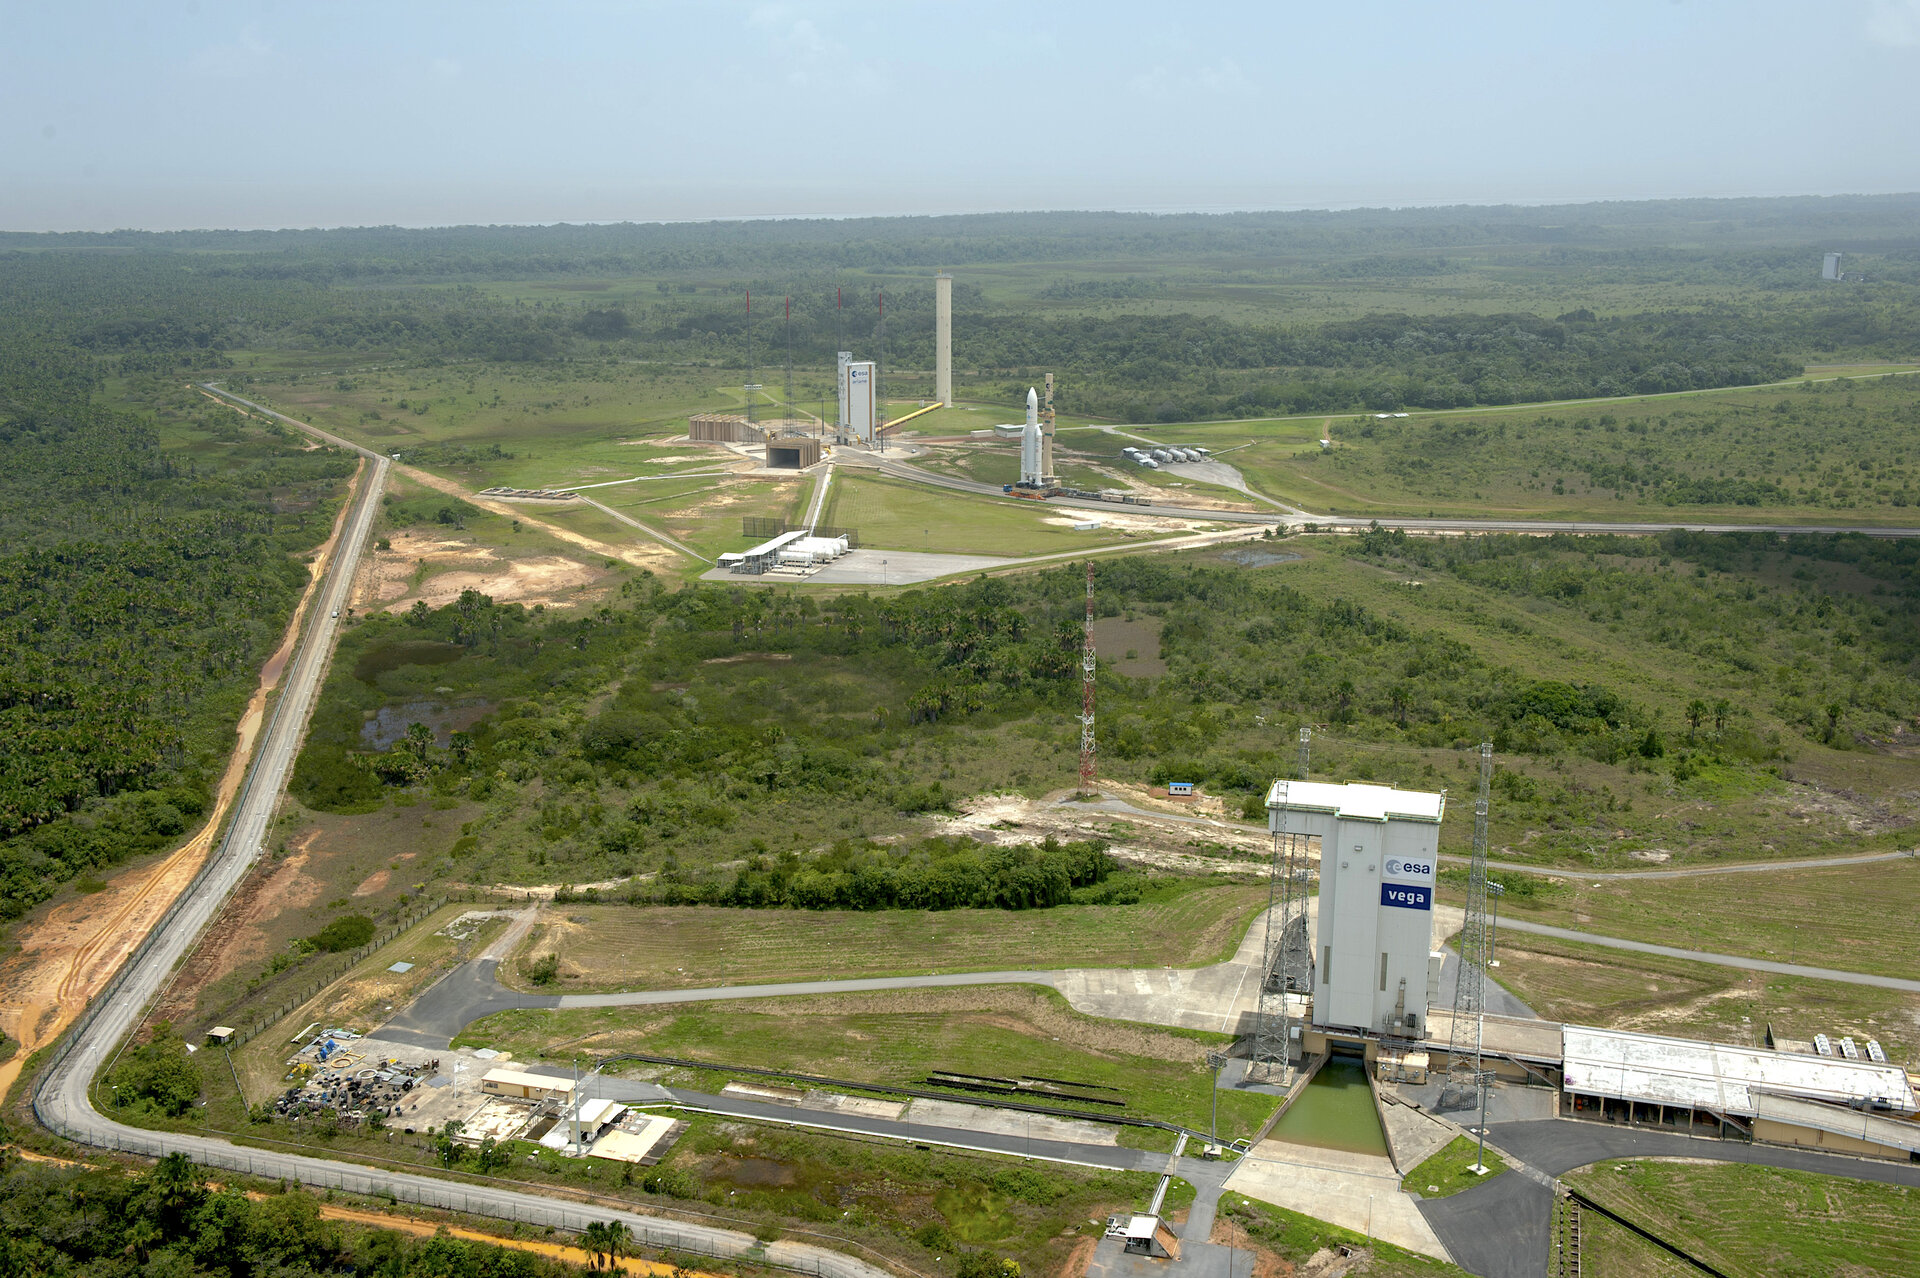 Vega and Ariane 5 launch pads at Europe's Spaceport